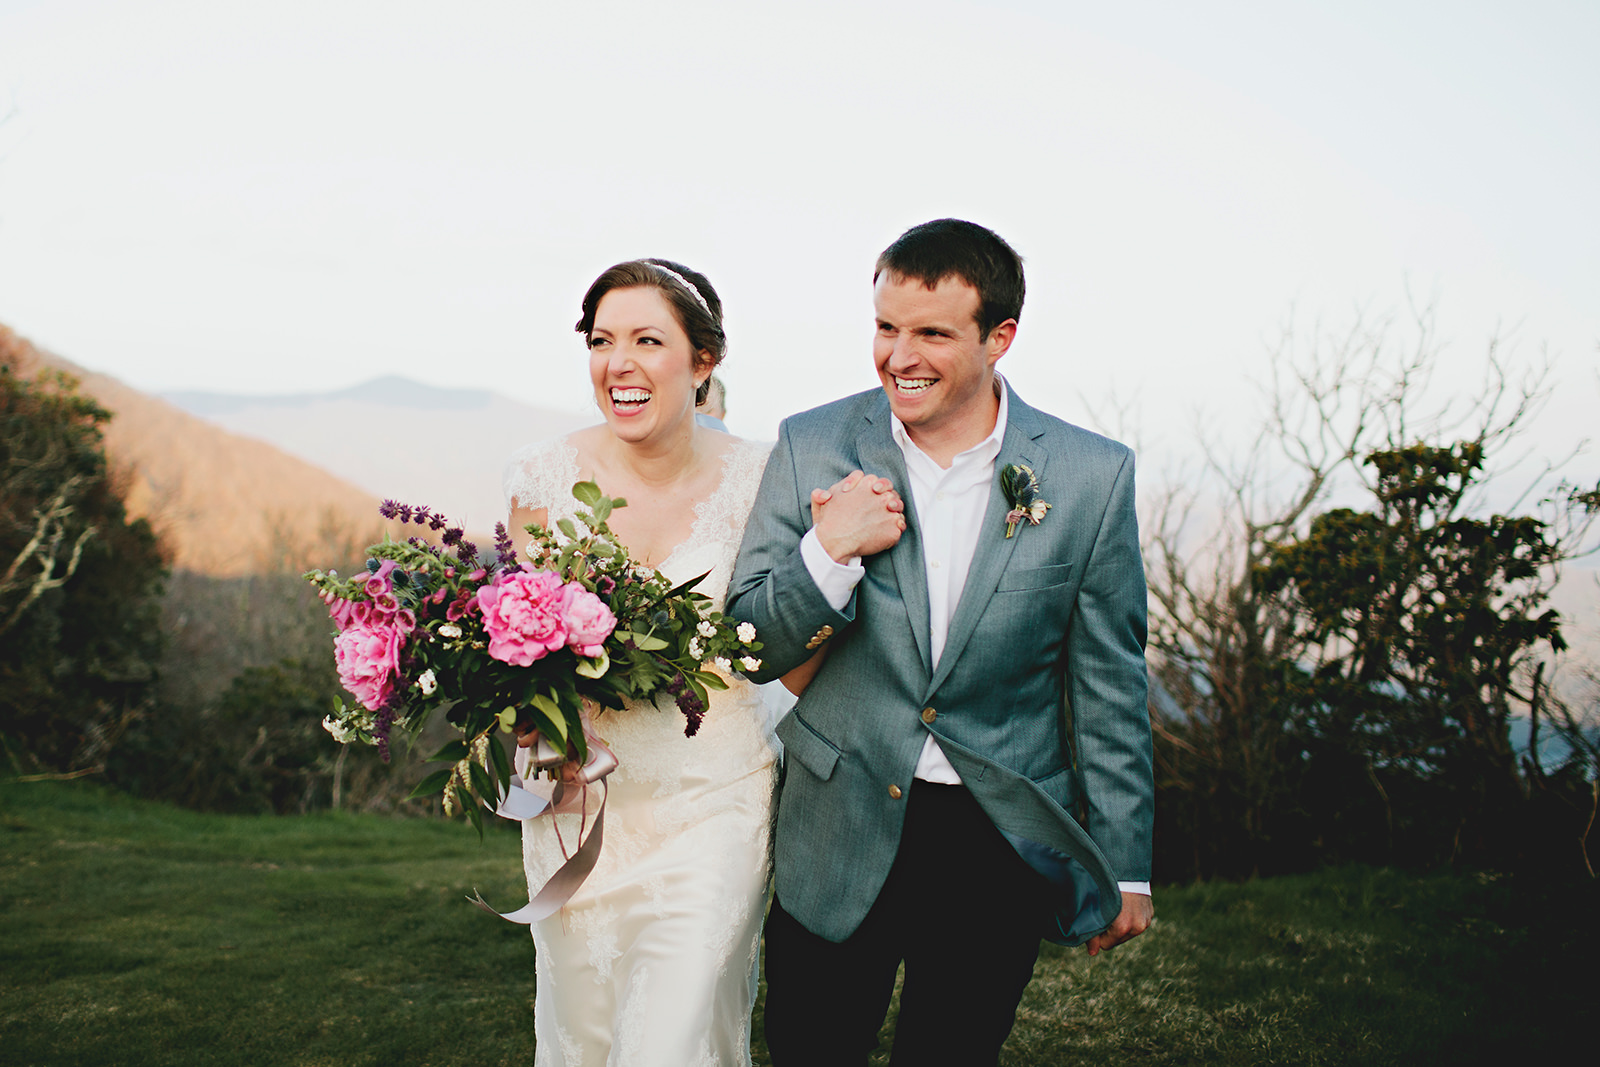 craggy gardbest asheville wedding photographersens photos